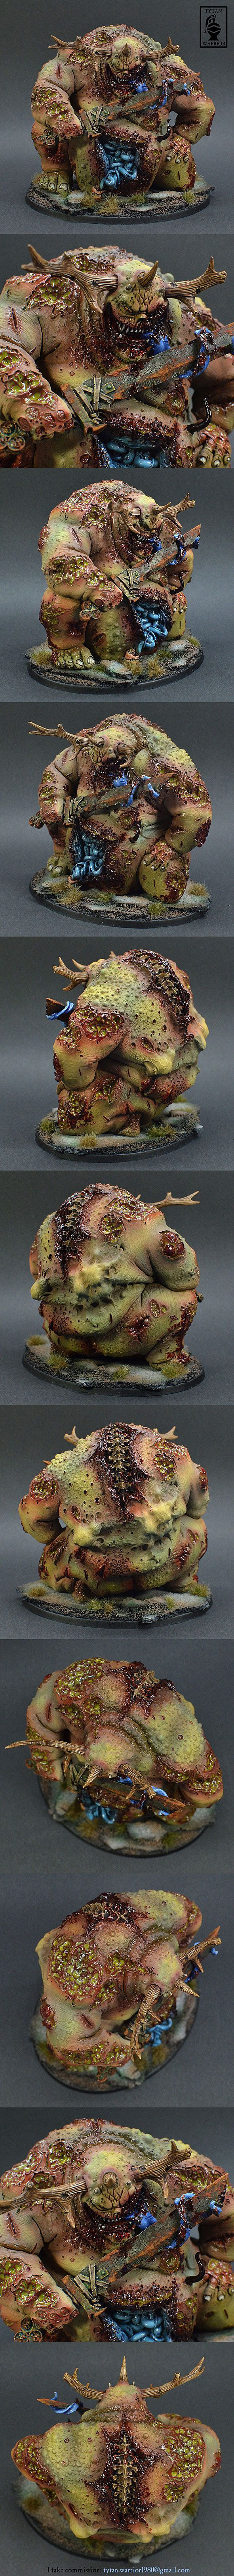 FORGE WORLD GREAT UNCLEAN ONE GREATER DAEMON OF NURGLE